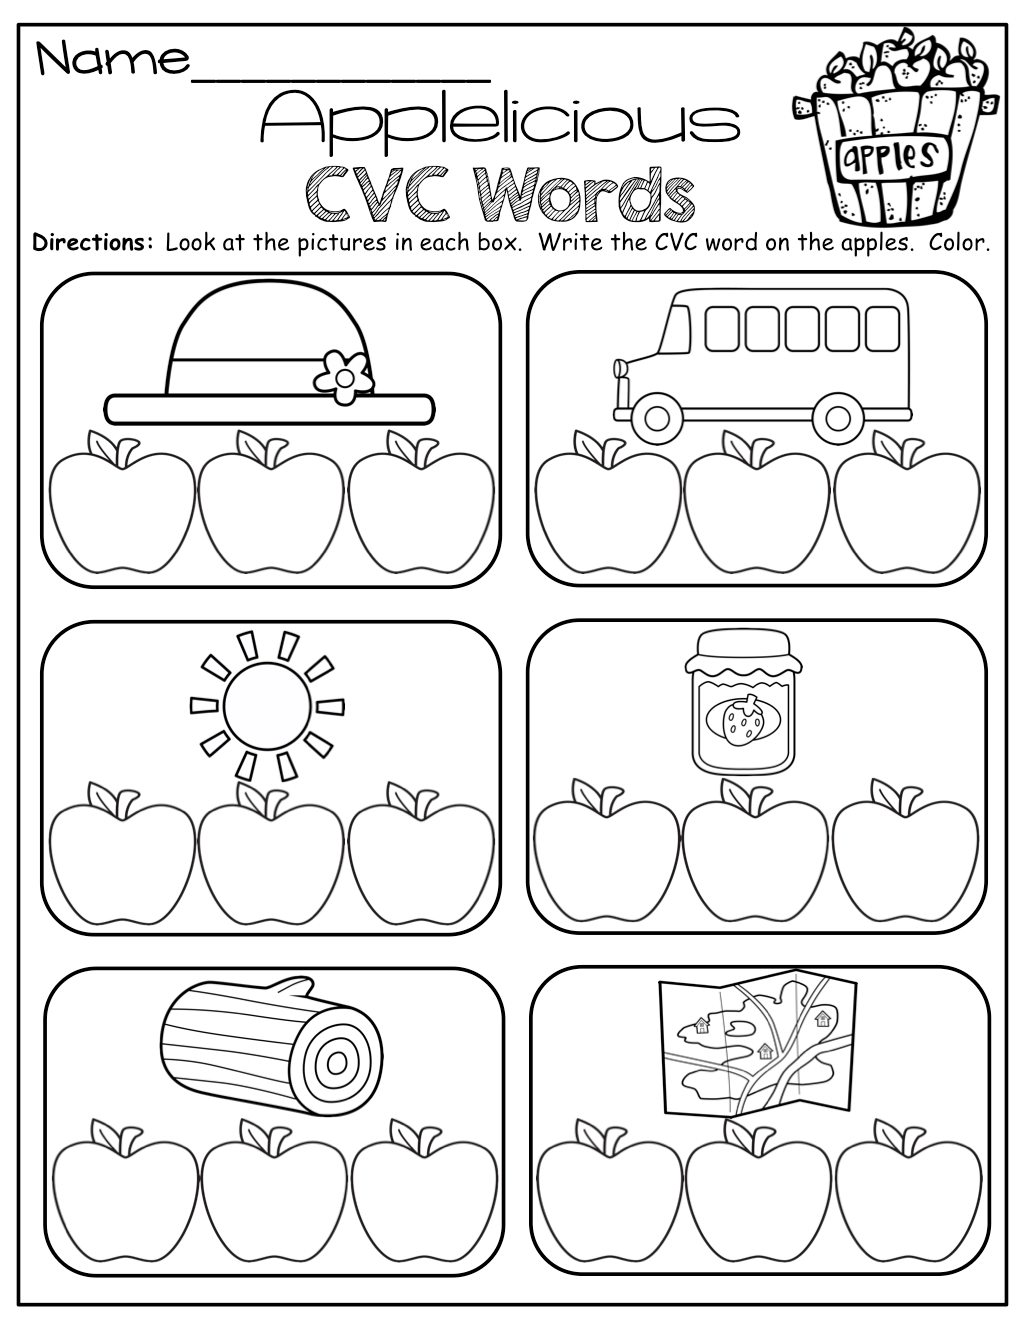 Cvc Words Write The Letter To Match The Picture For Each Cvc Word